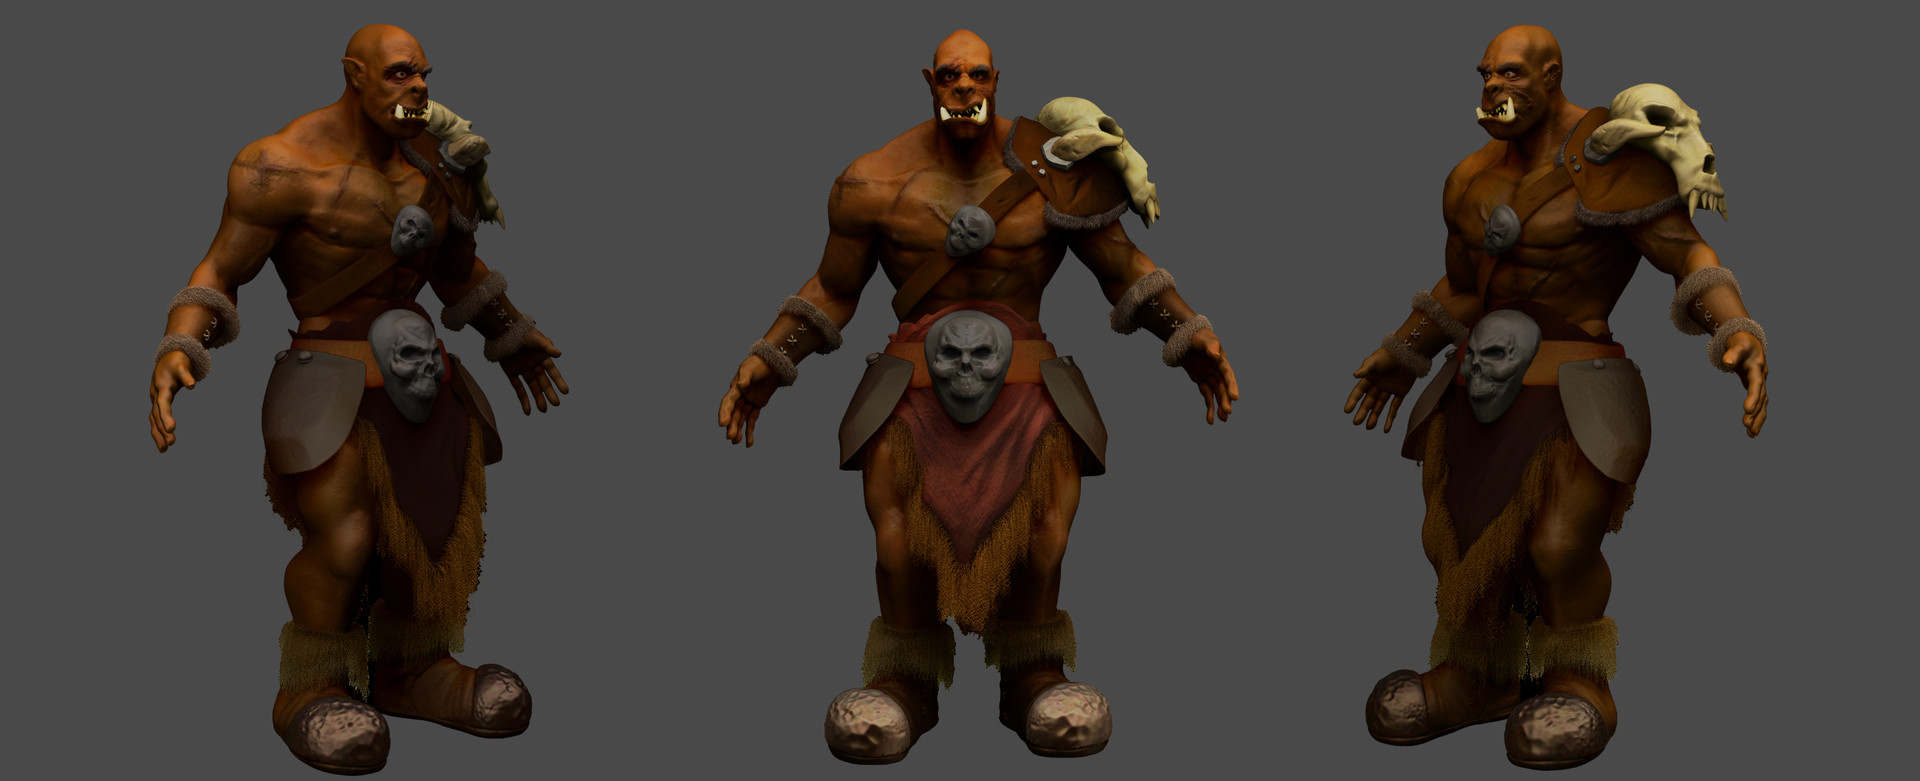 Mitchell sisson orc render